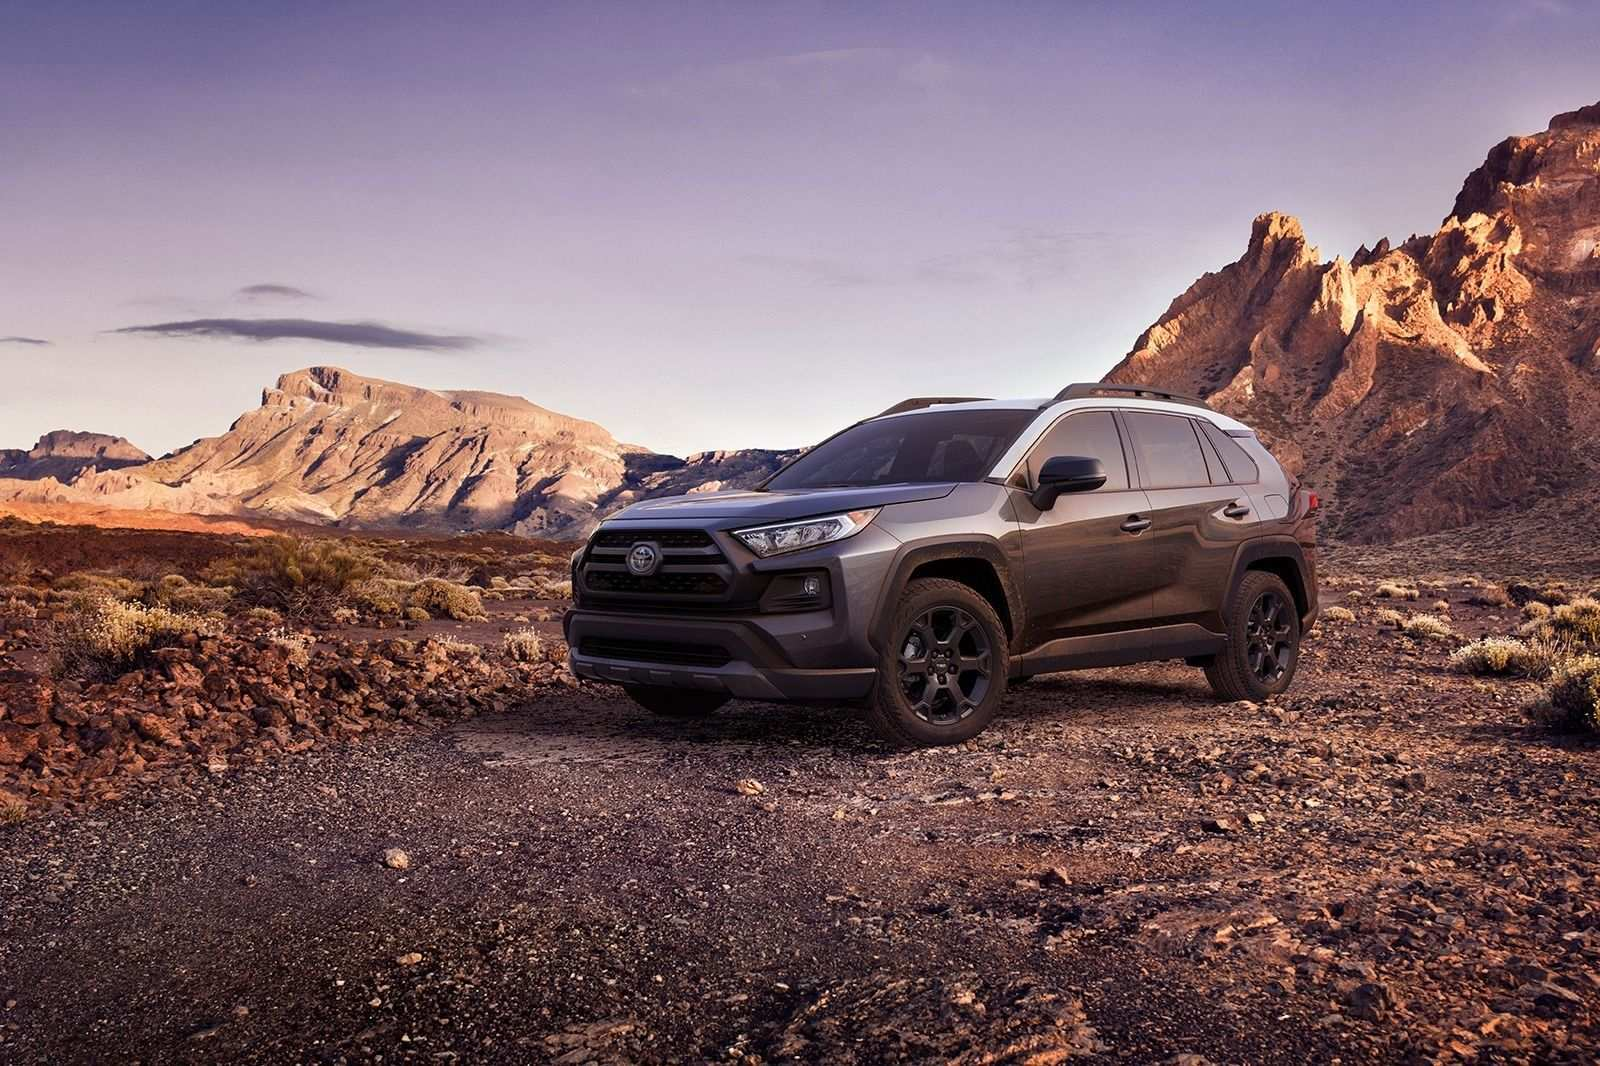 70 Best Review Toyota Jeep 2020 Price and Review for Toyota Jeep 2020